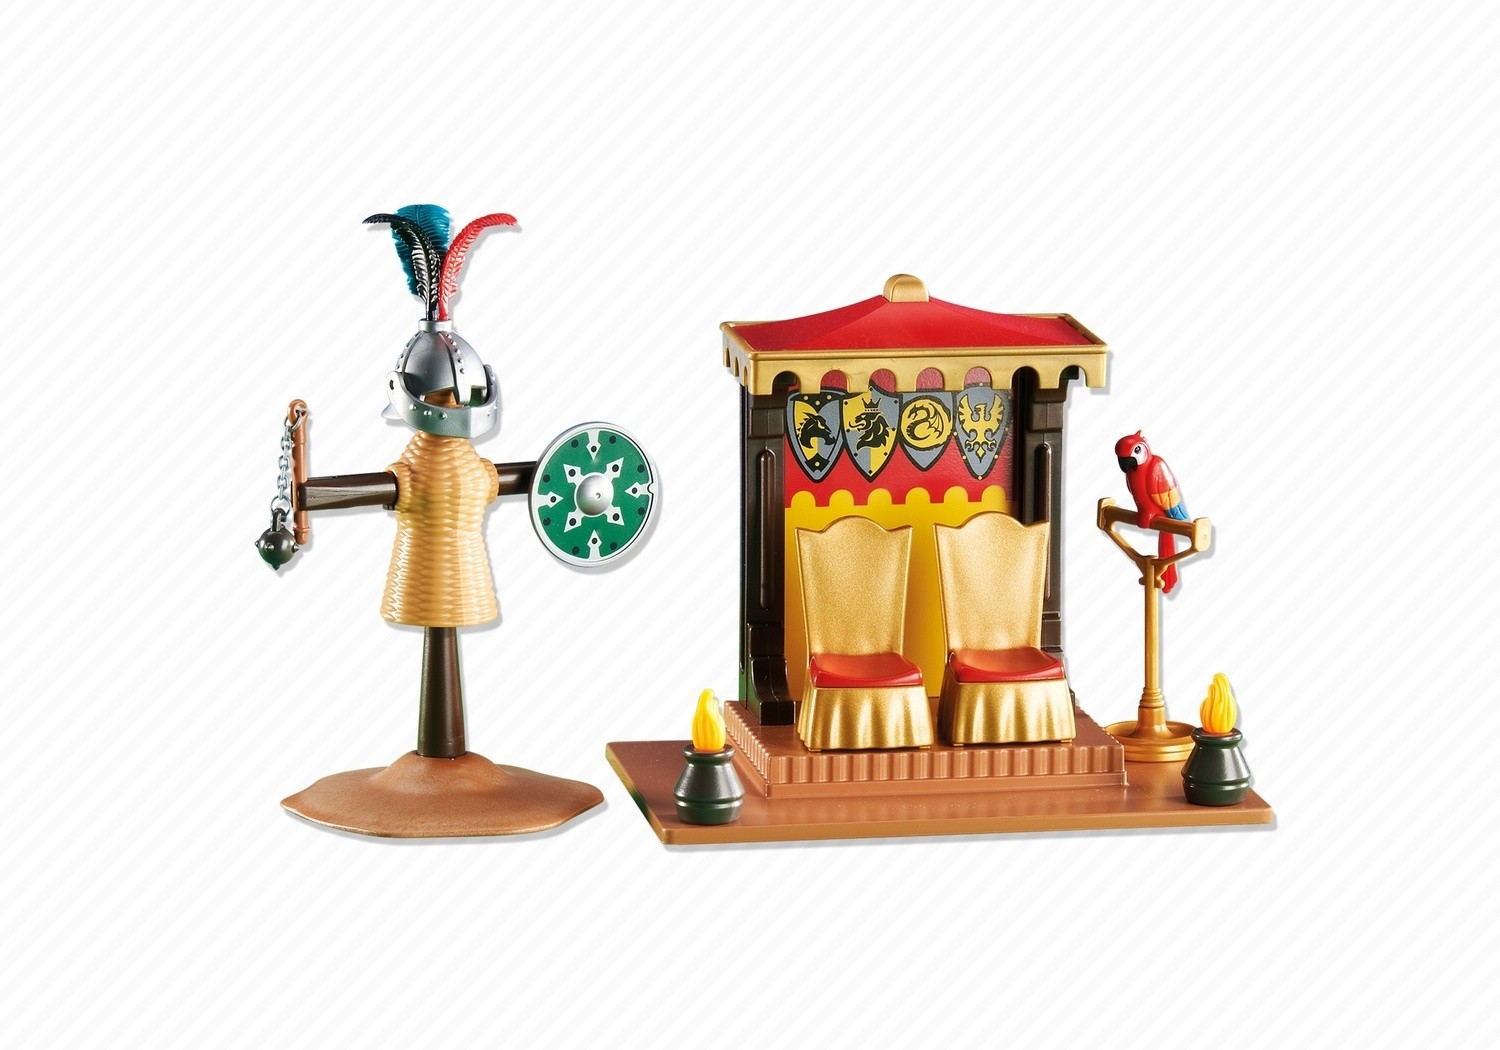 Kings Throne tournament - Playmobil sets 6375